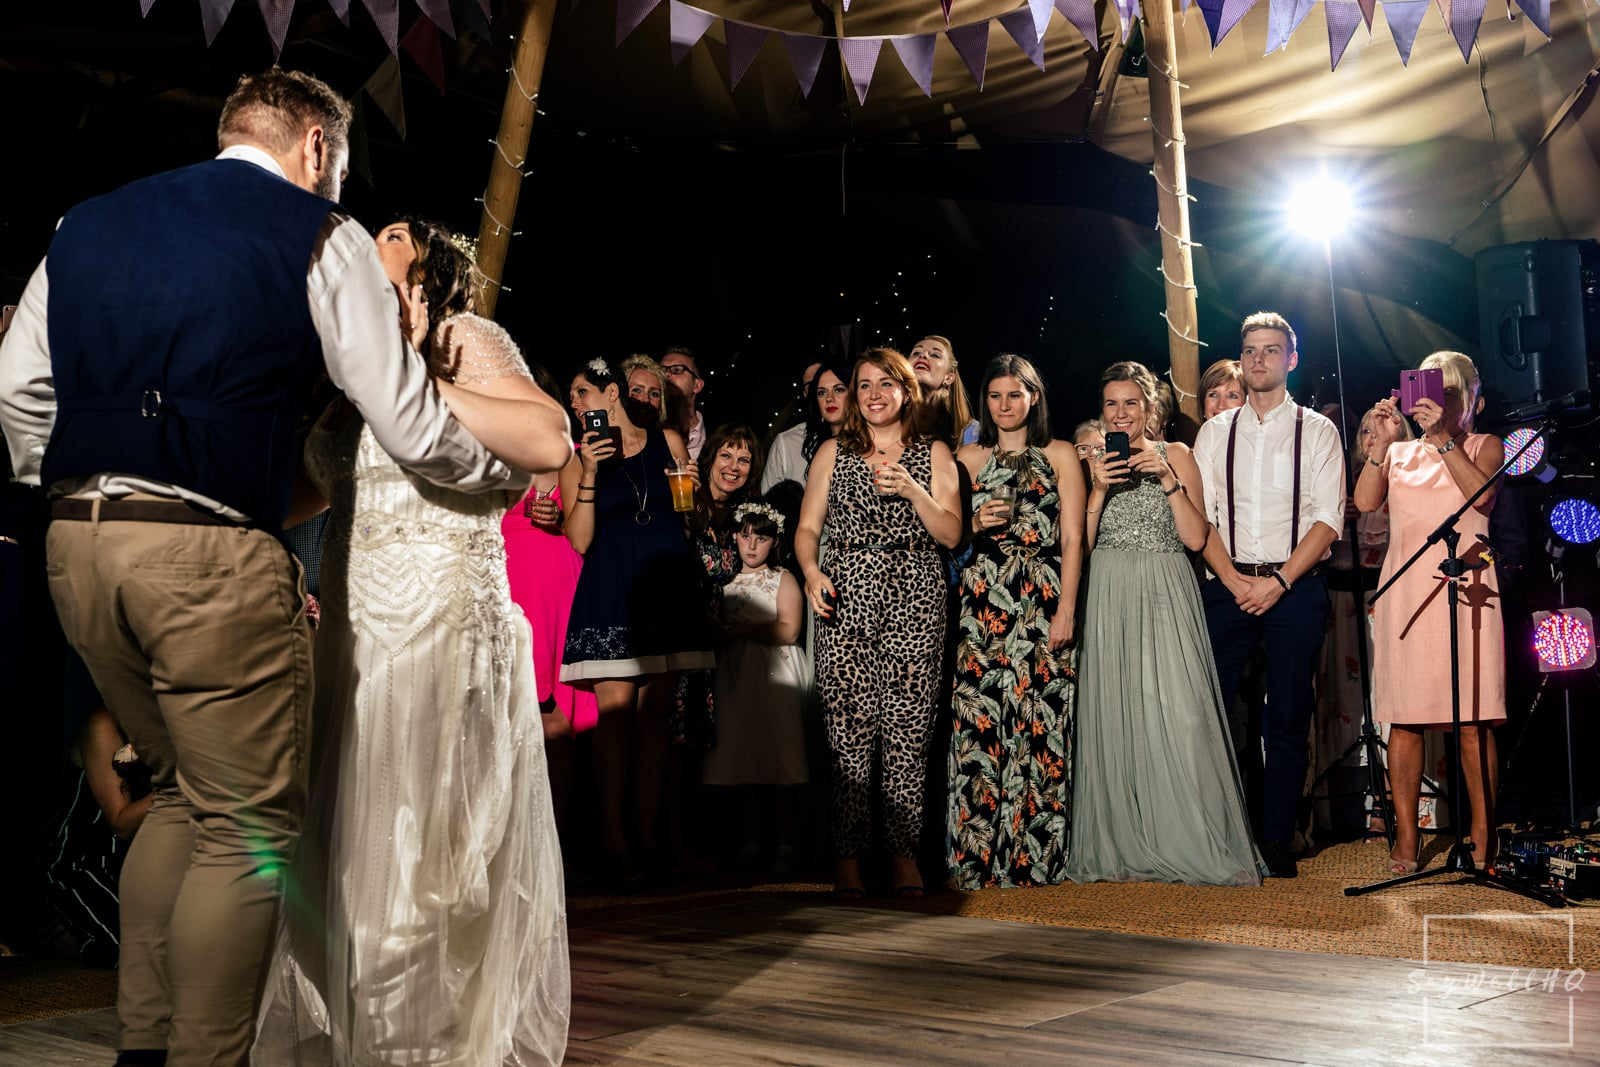 Mapperley Farm Wedding Photography + Mapperley Farm Wedding Photographer + wedding guests looking on as the bride and groom first dance inside their wedding tipi at an outdoor summer wedding